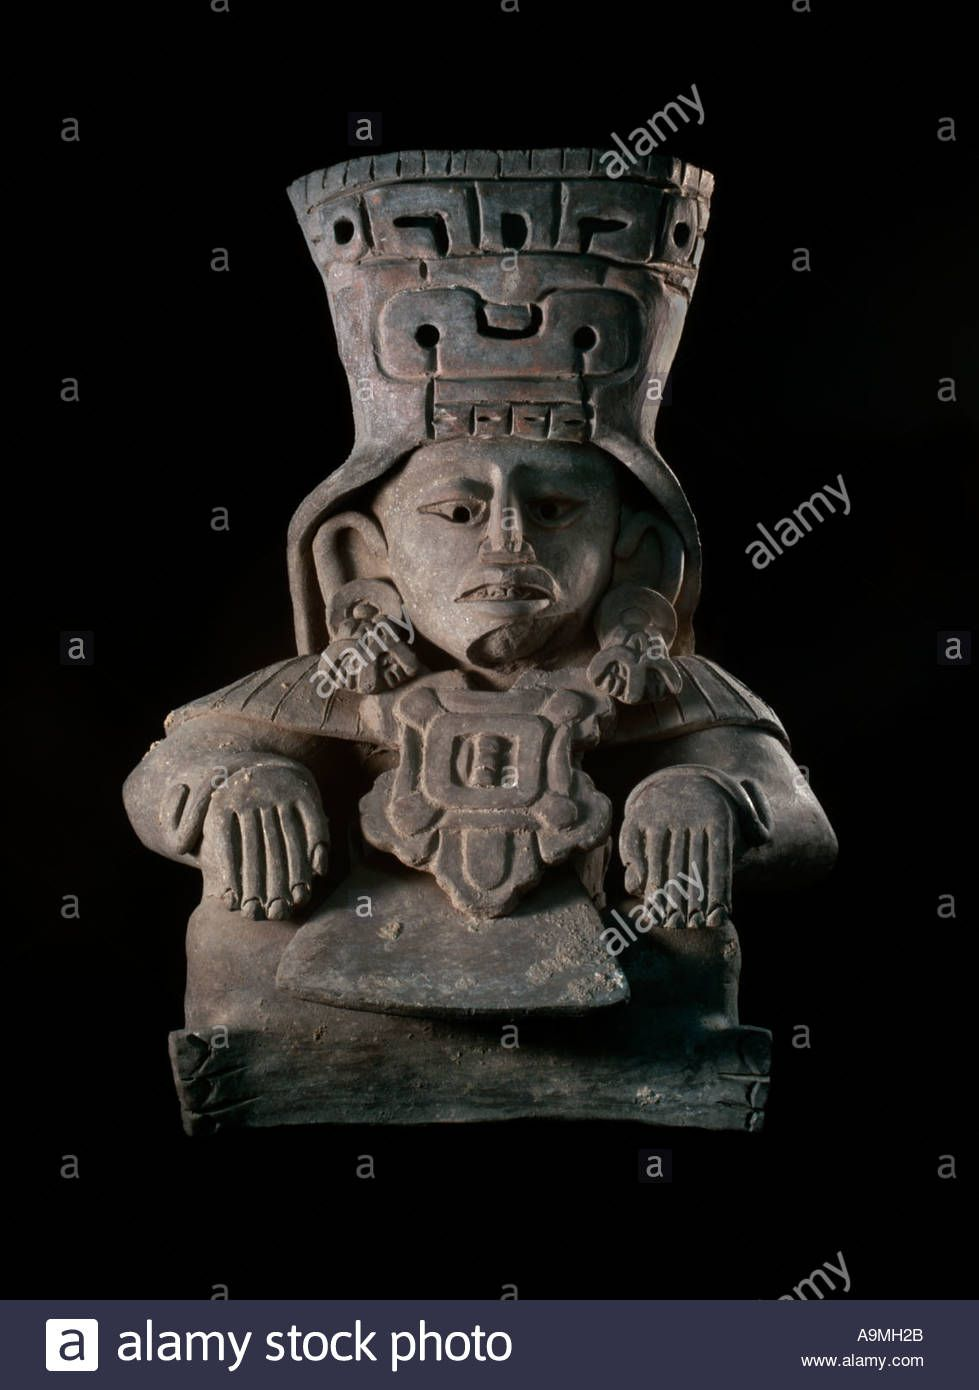 Zapotec glyph stock images ancient history of north america